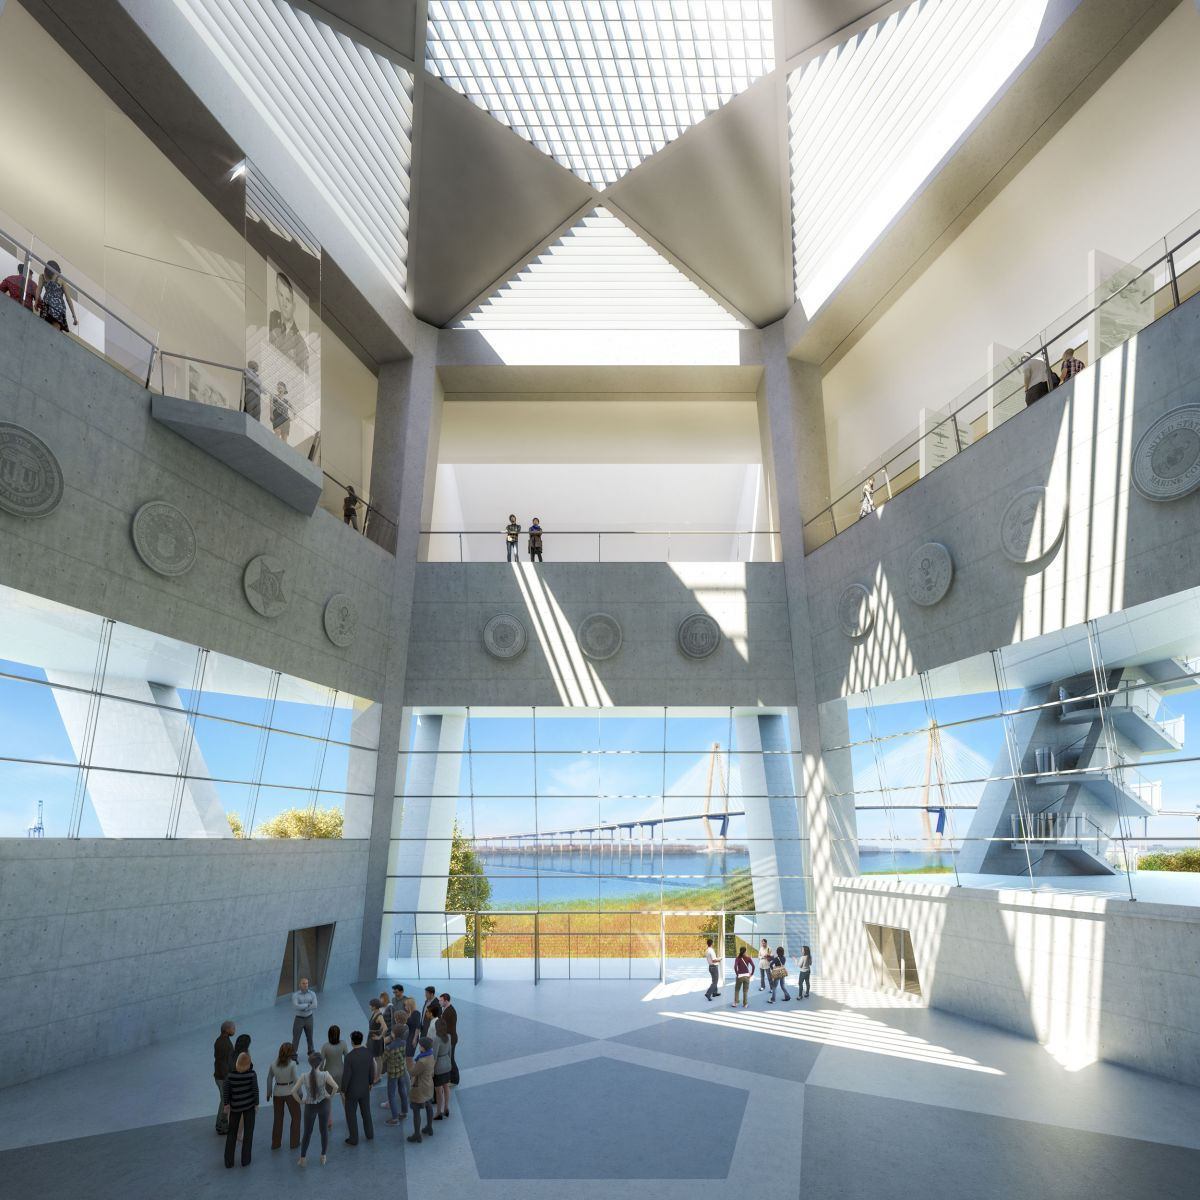 The star shape of the Medal of Honor will be seen in the Hall of Valor's ceiling and floor inside the National Medal of Honor Museum. (Rendering/Safdie Architects for the National Medal of Honor Museum)